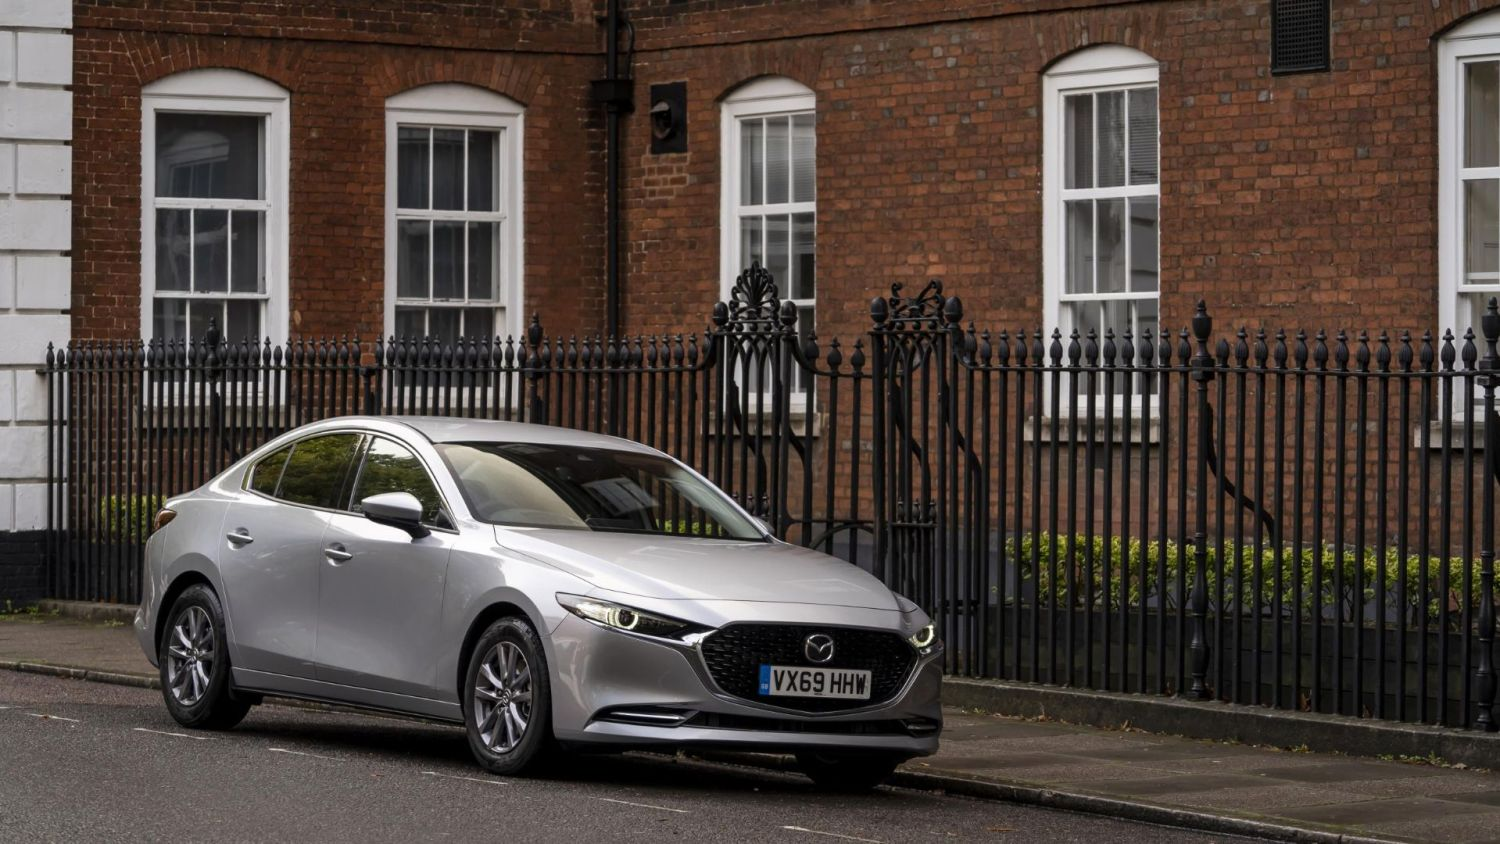 Save £6,000 in scrappage on a new Mazda